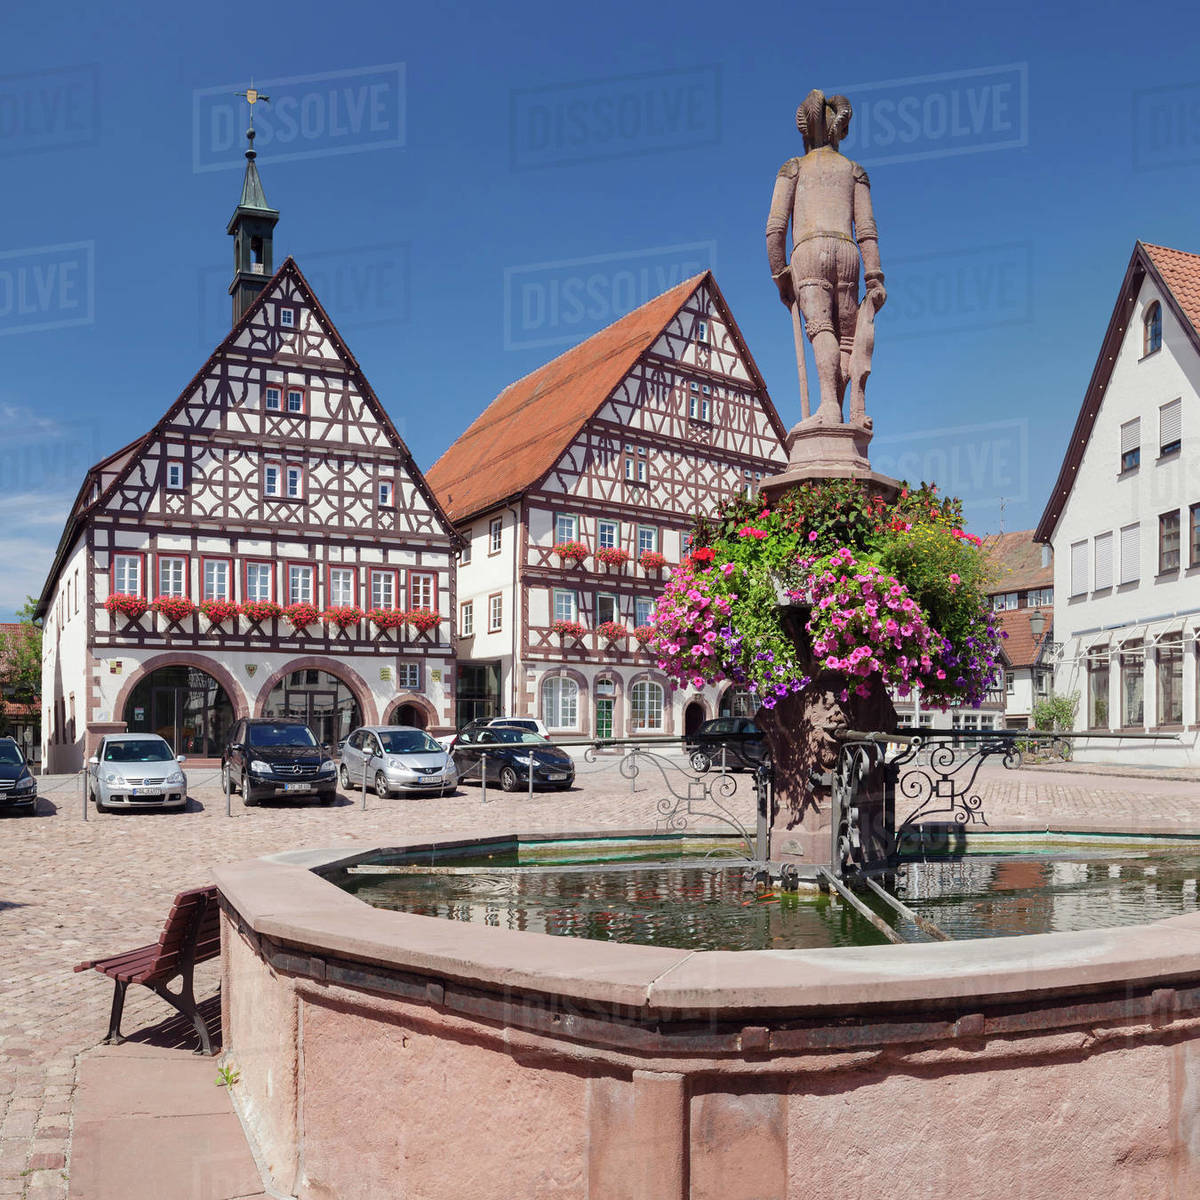 Town hall and half-timbered house, marketplace, Dornstetten, Black Forest, Baden-Wurttemberg, Germany, Europe Royalty-free stock photo